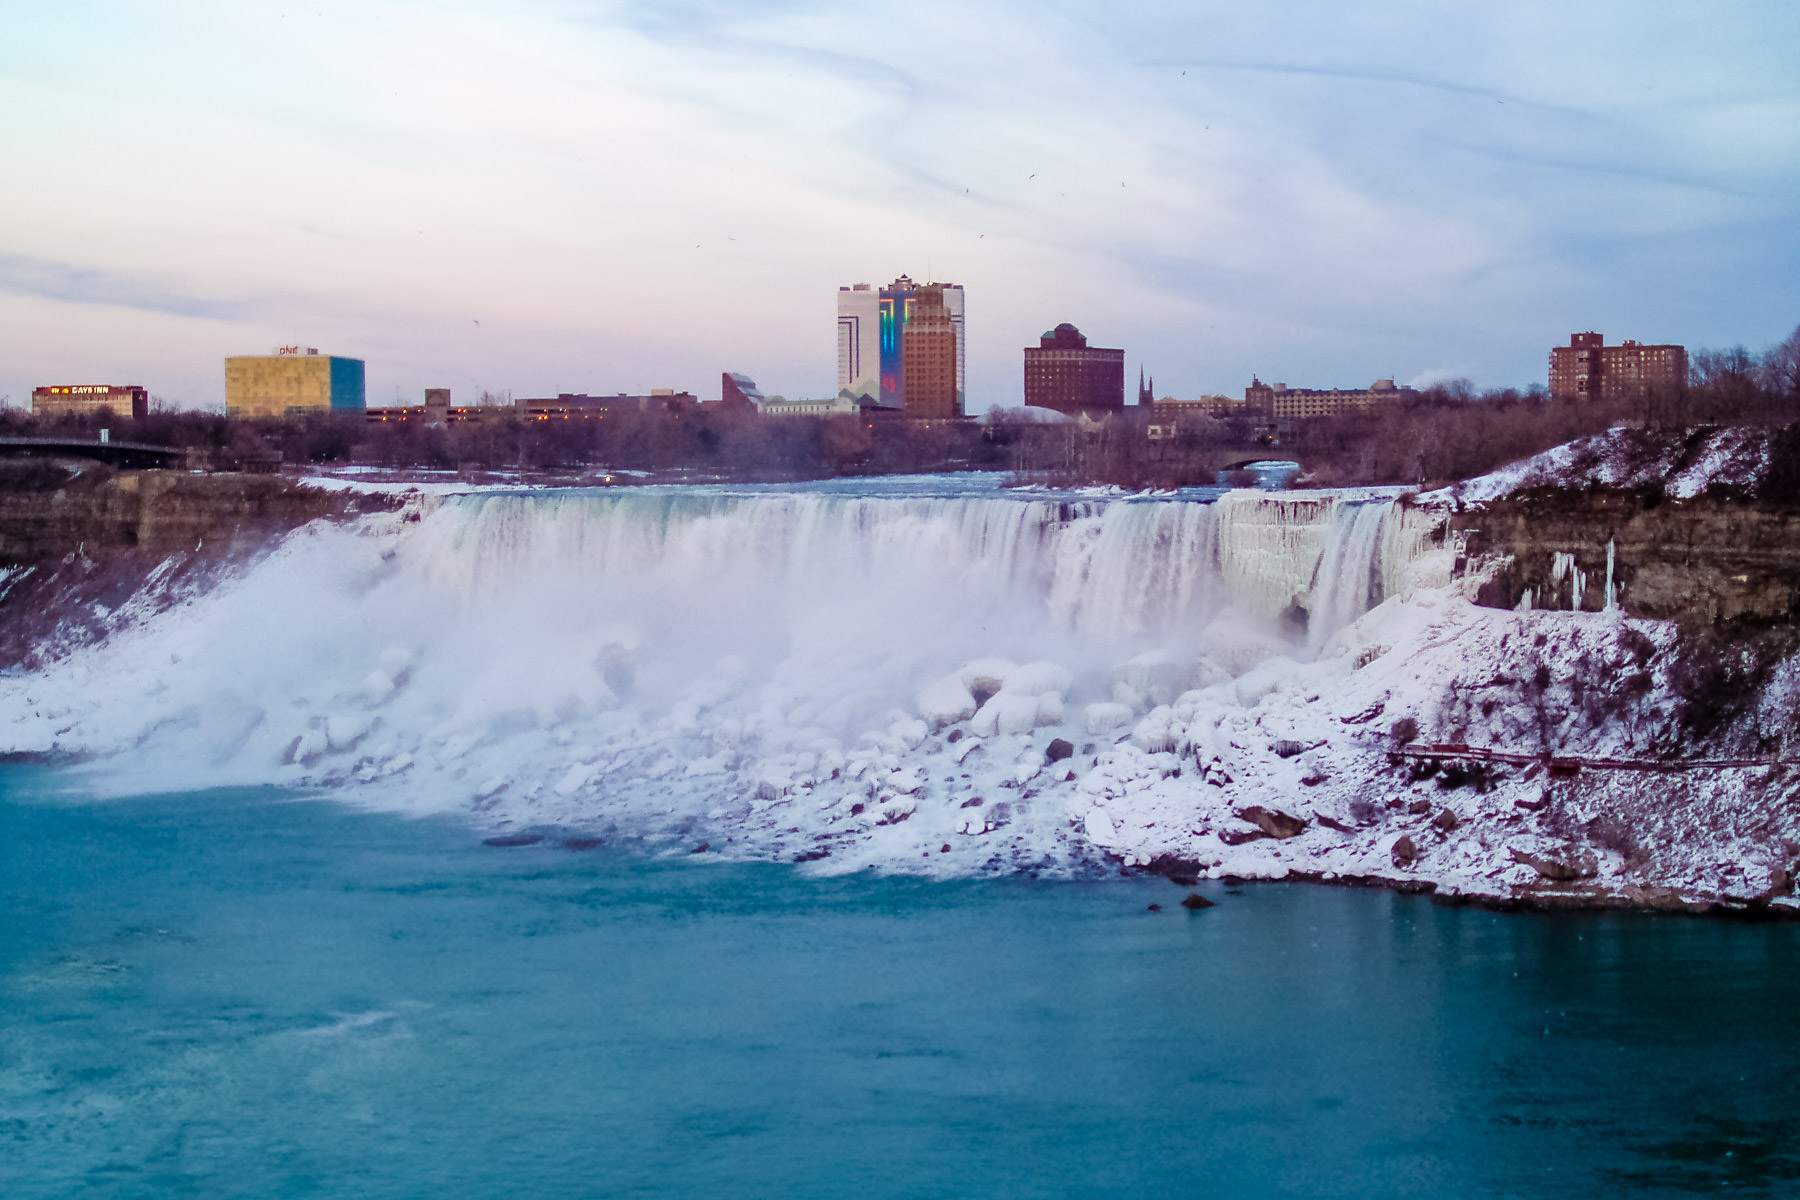 The American Falls at Niagara Falls as seen from the Canadian side of the border on a cold winter day.